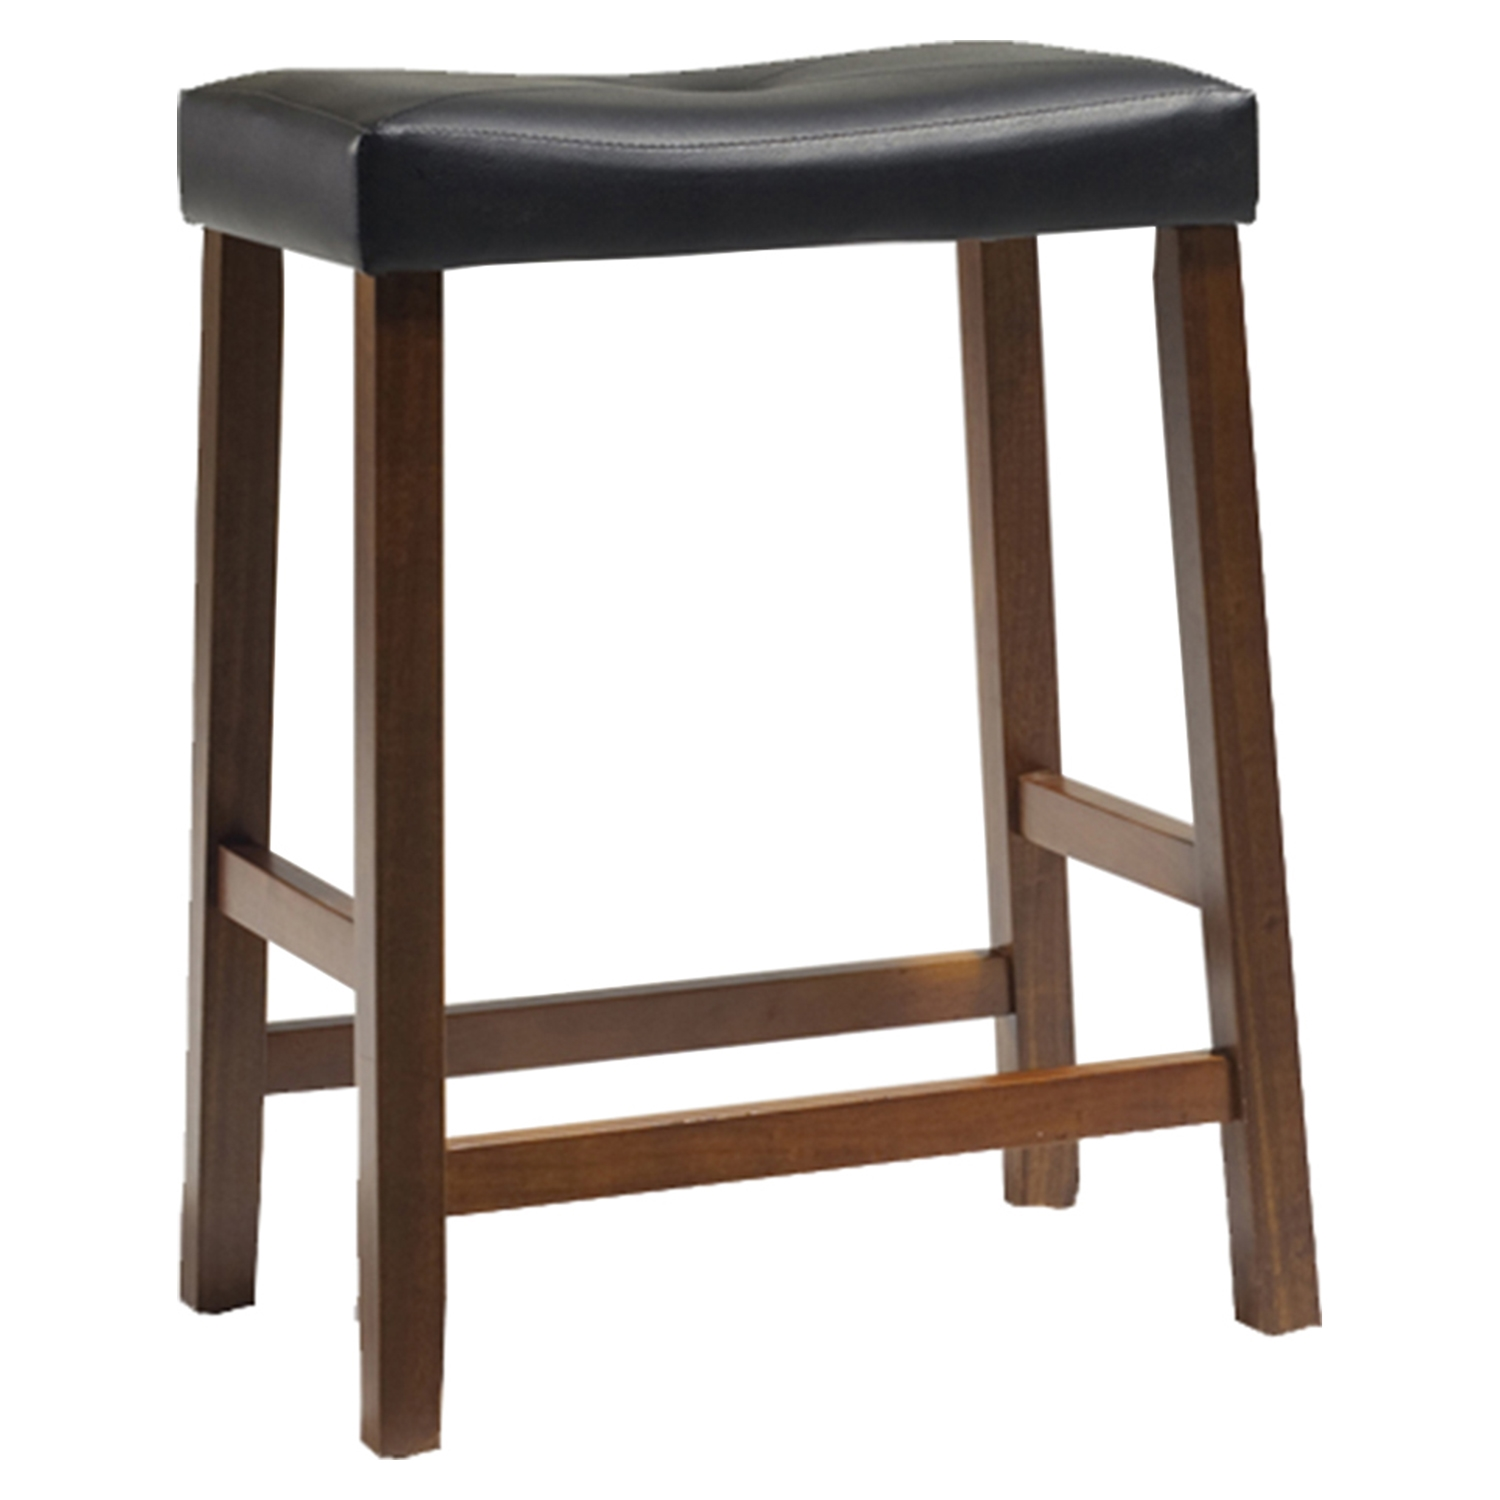 36 inch bar stool upholstered saddle seat bar stool with 24 inch seat height classic cherry